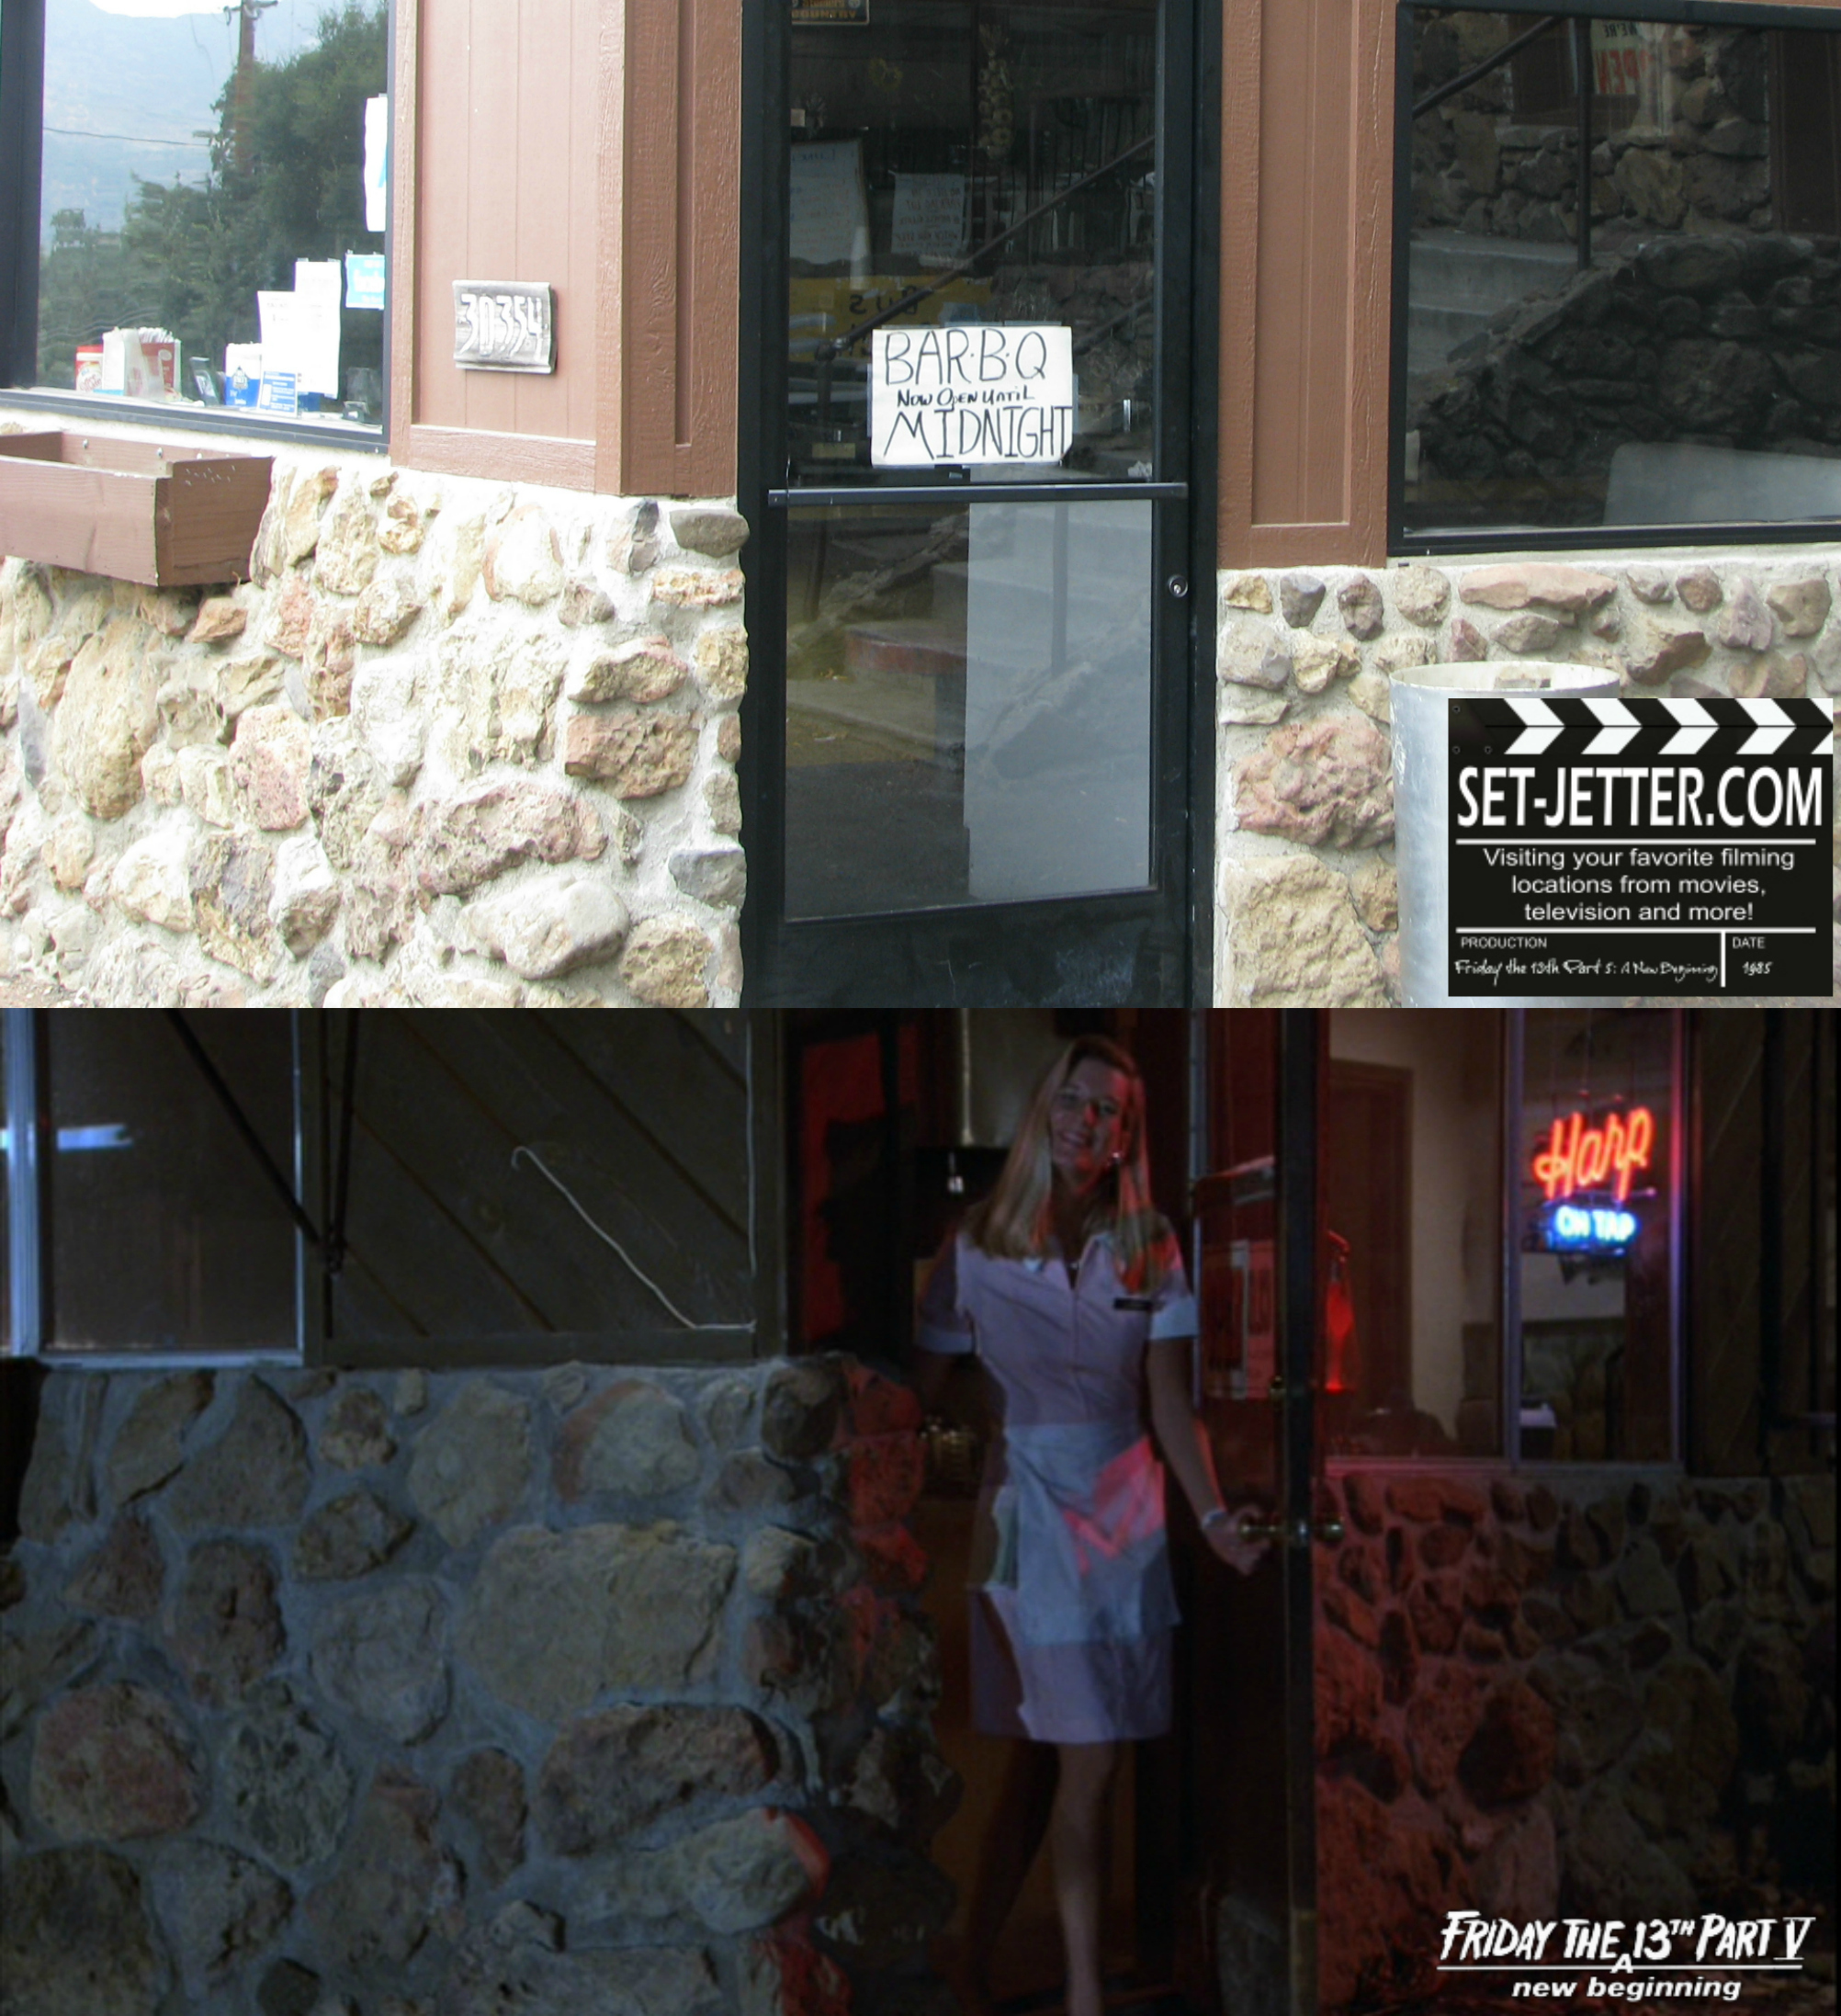 Friday the 13th Part V comparison 05.jpg